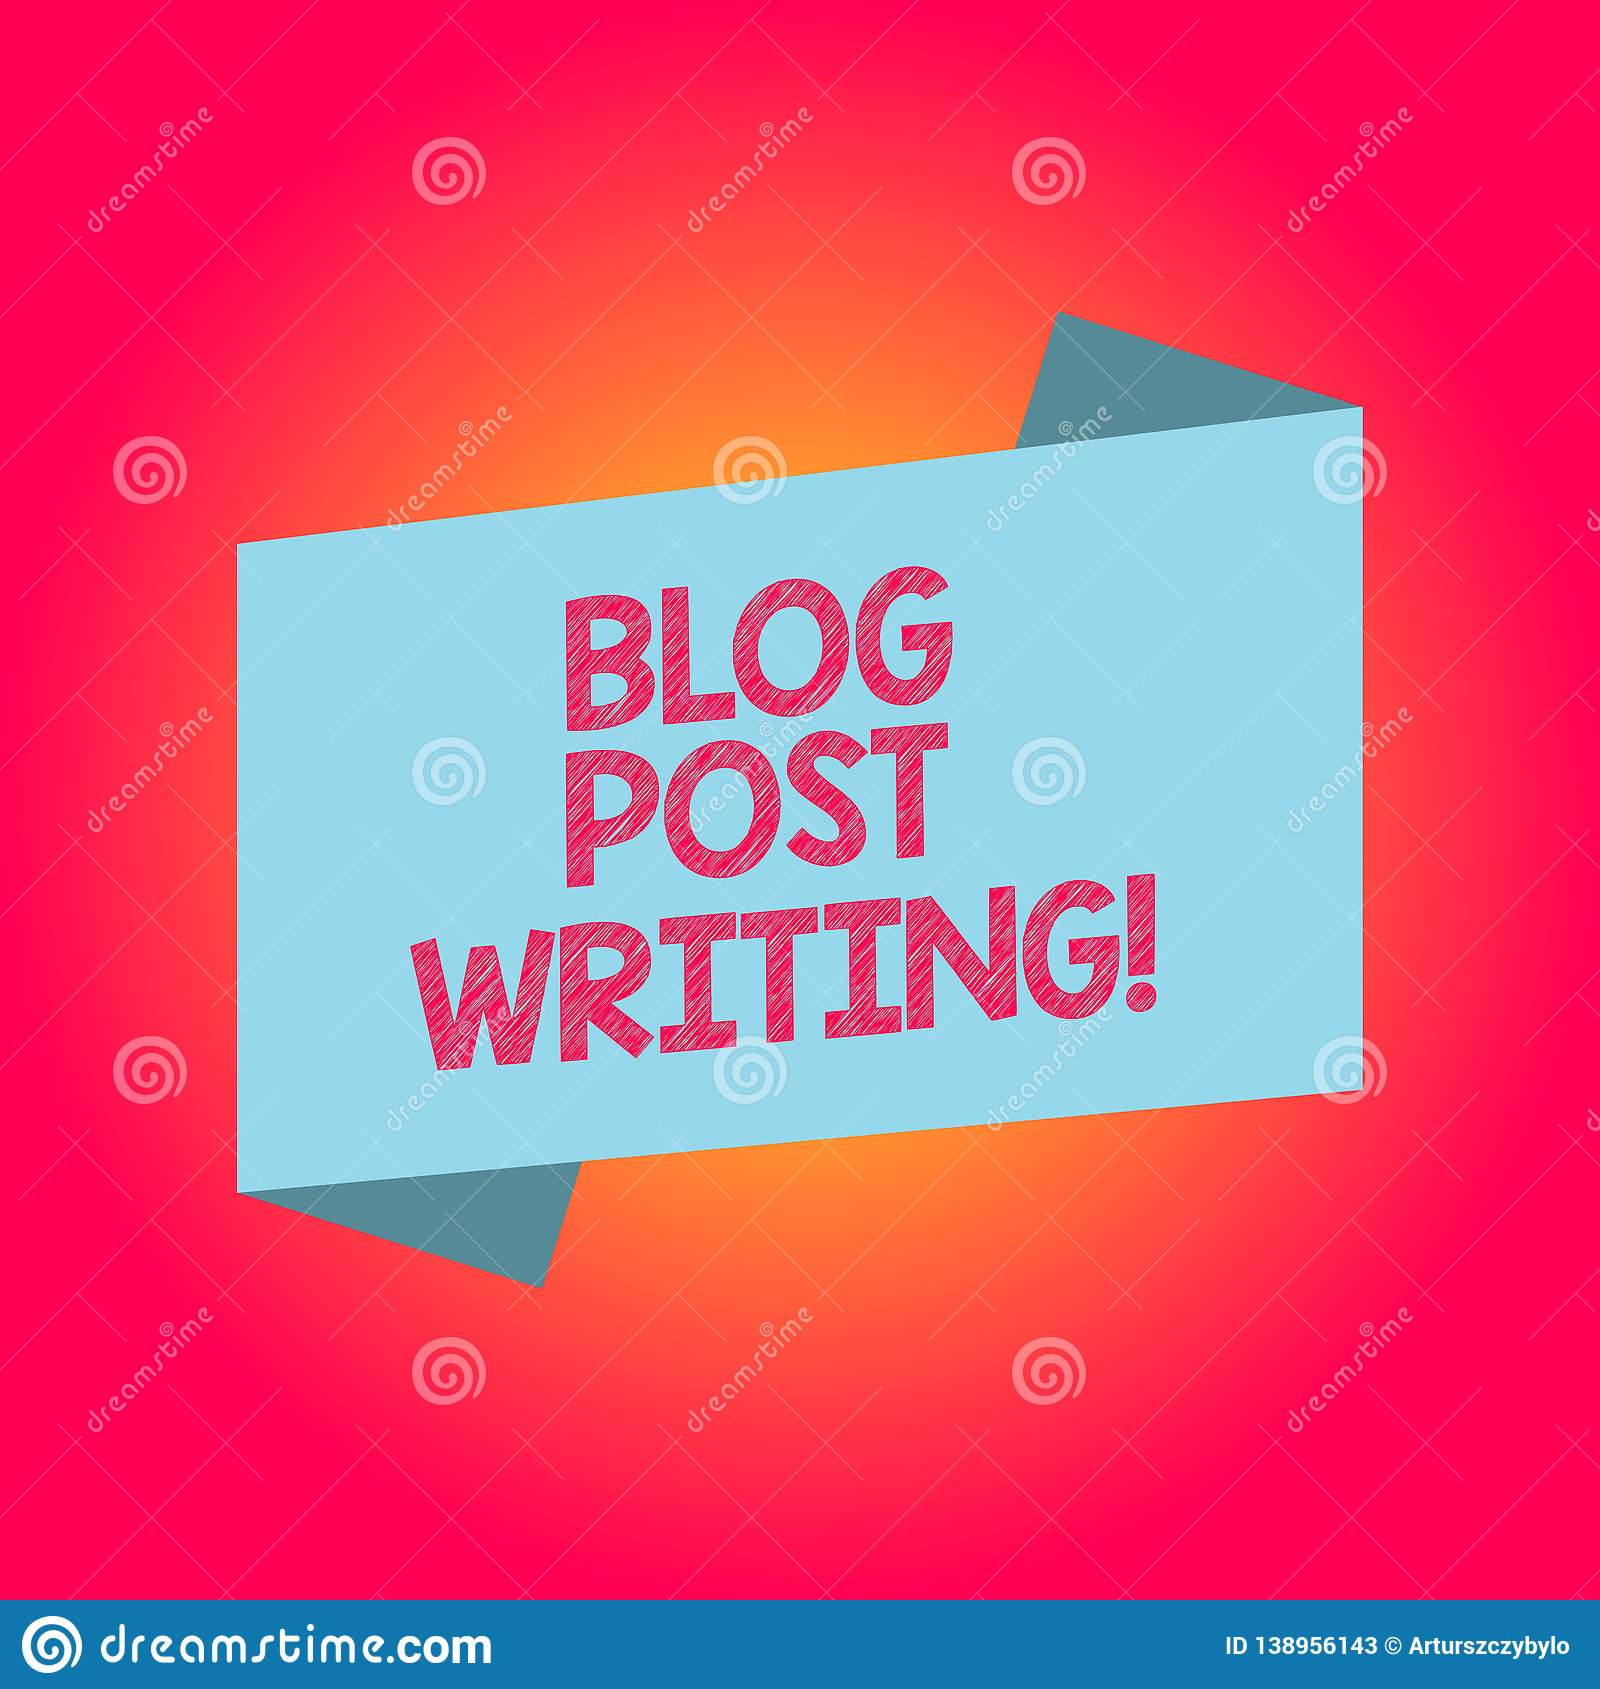 Handwriting Text Writing Blog Post Writing Concept Meaning Demonstratingal Online Diary Or Say Journal Share Their Stock Illustration Illustration Of Sharing Cloud 138956143